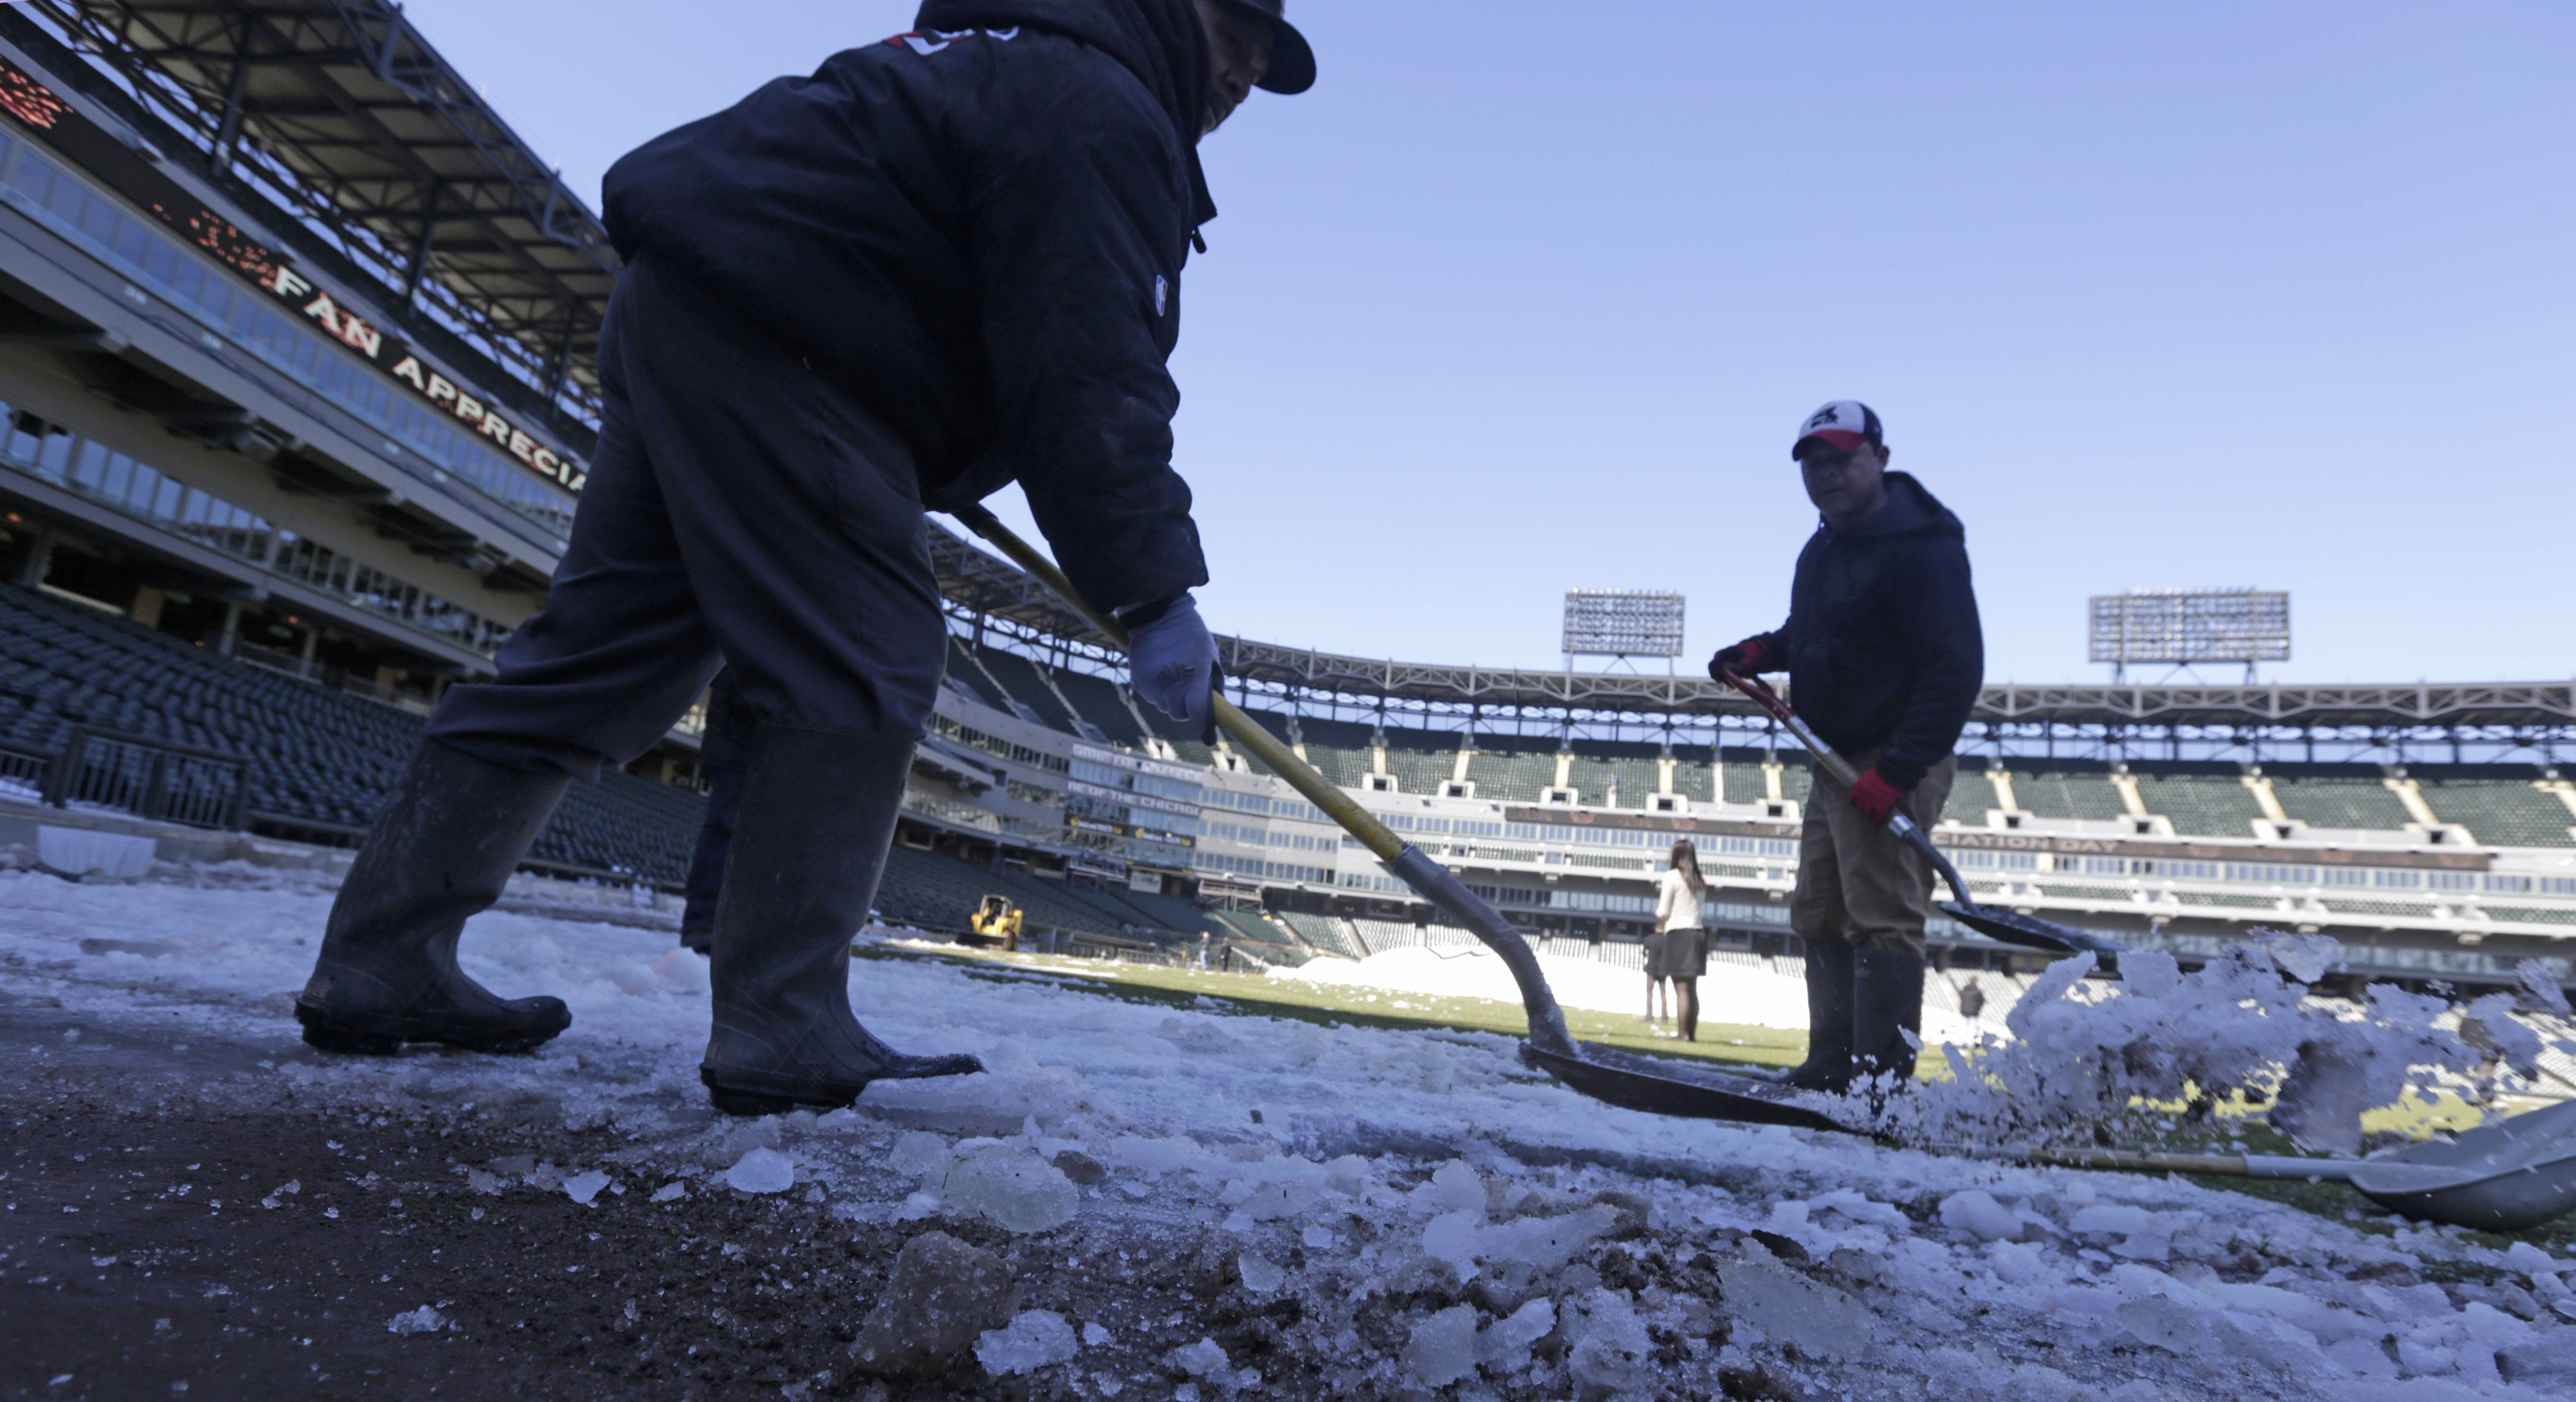 This Monday photo taken in Chicago, shows U.S. Cellular Field, home to the Chicago White Sox baseball team, as members of head groundskeeper Roger Bossard's crew work to ready the field for opening day after one of the most brutal winters the city has ever seen. Brossard described the unusual conditions including 30 inches of permafrost, and having to remove 400 tons of snow from the playing field, as the perfect storm.